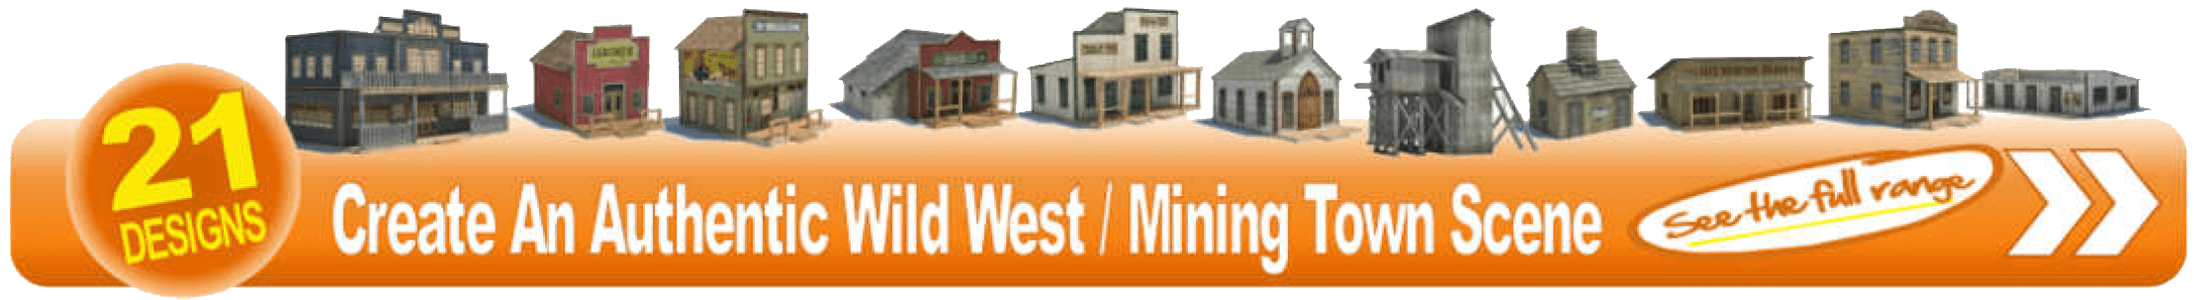 download old wild west mining town scale models